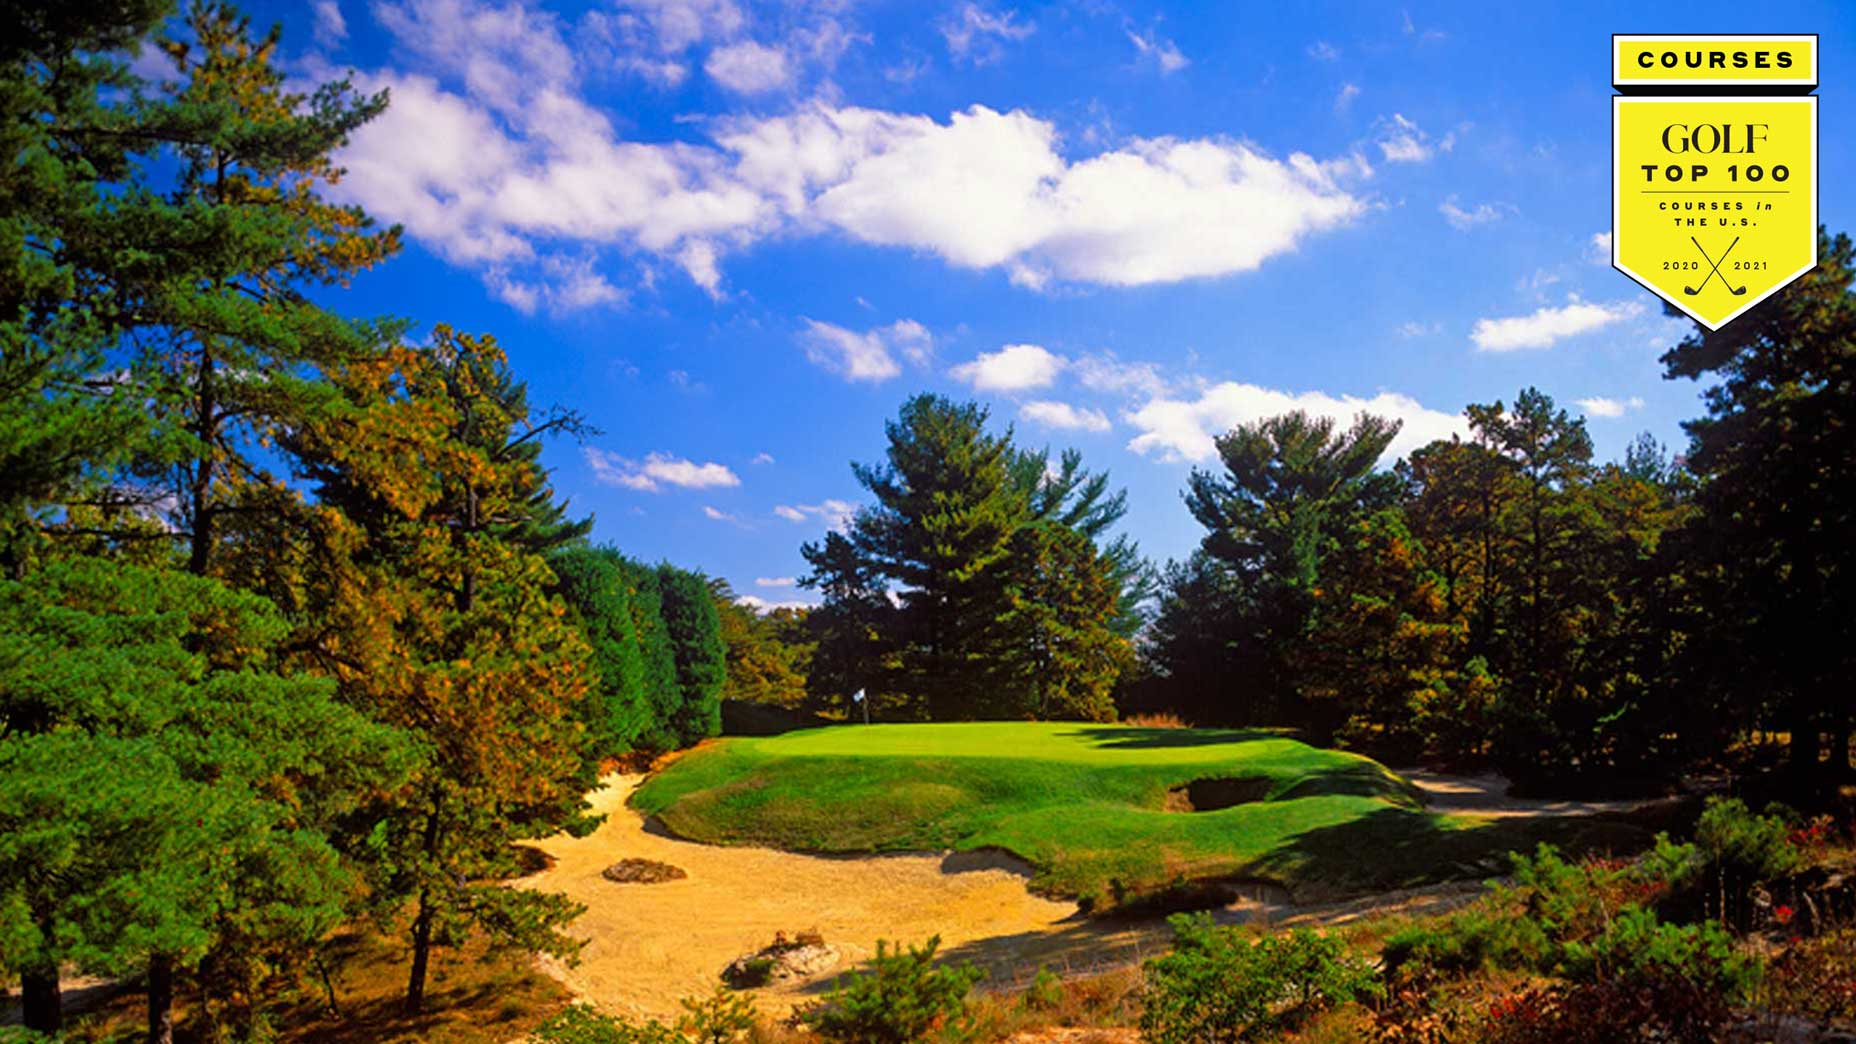 Our Top 100 Courses in the U.S. broken down by state